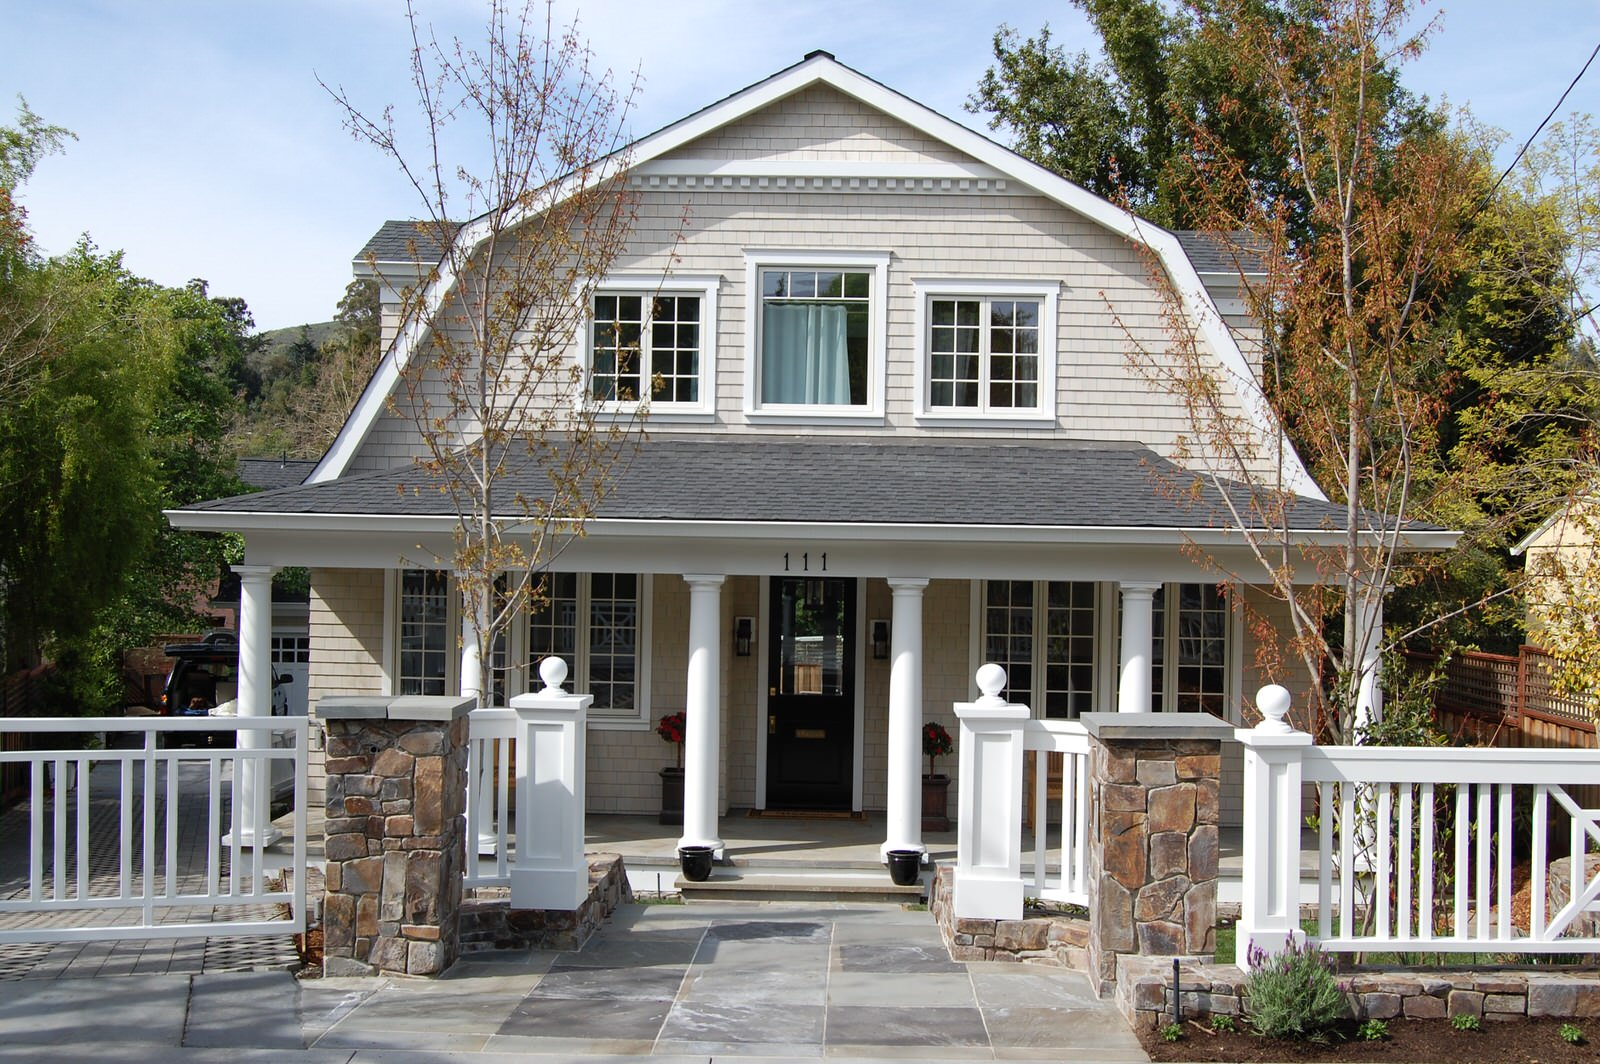 Sycamore Park Gambrel Roof Shingle Style